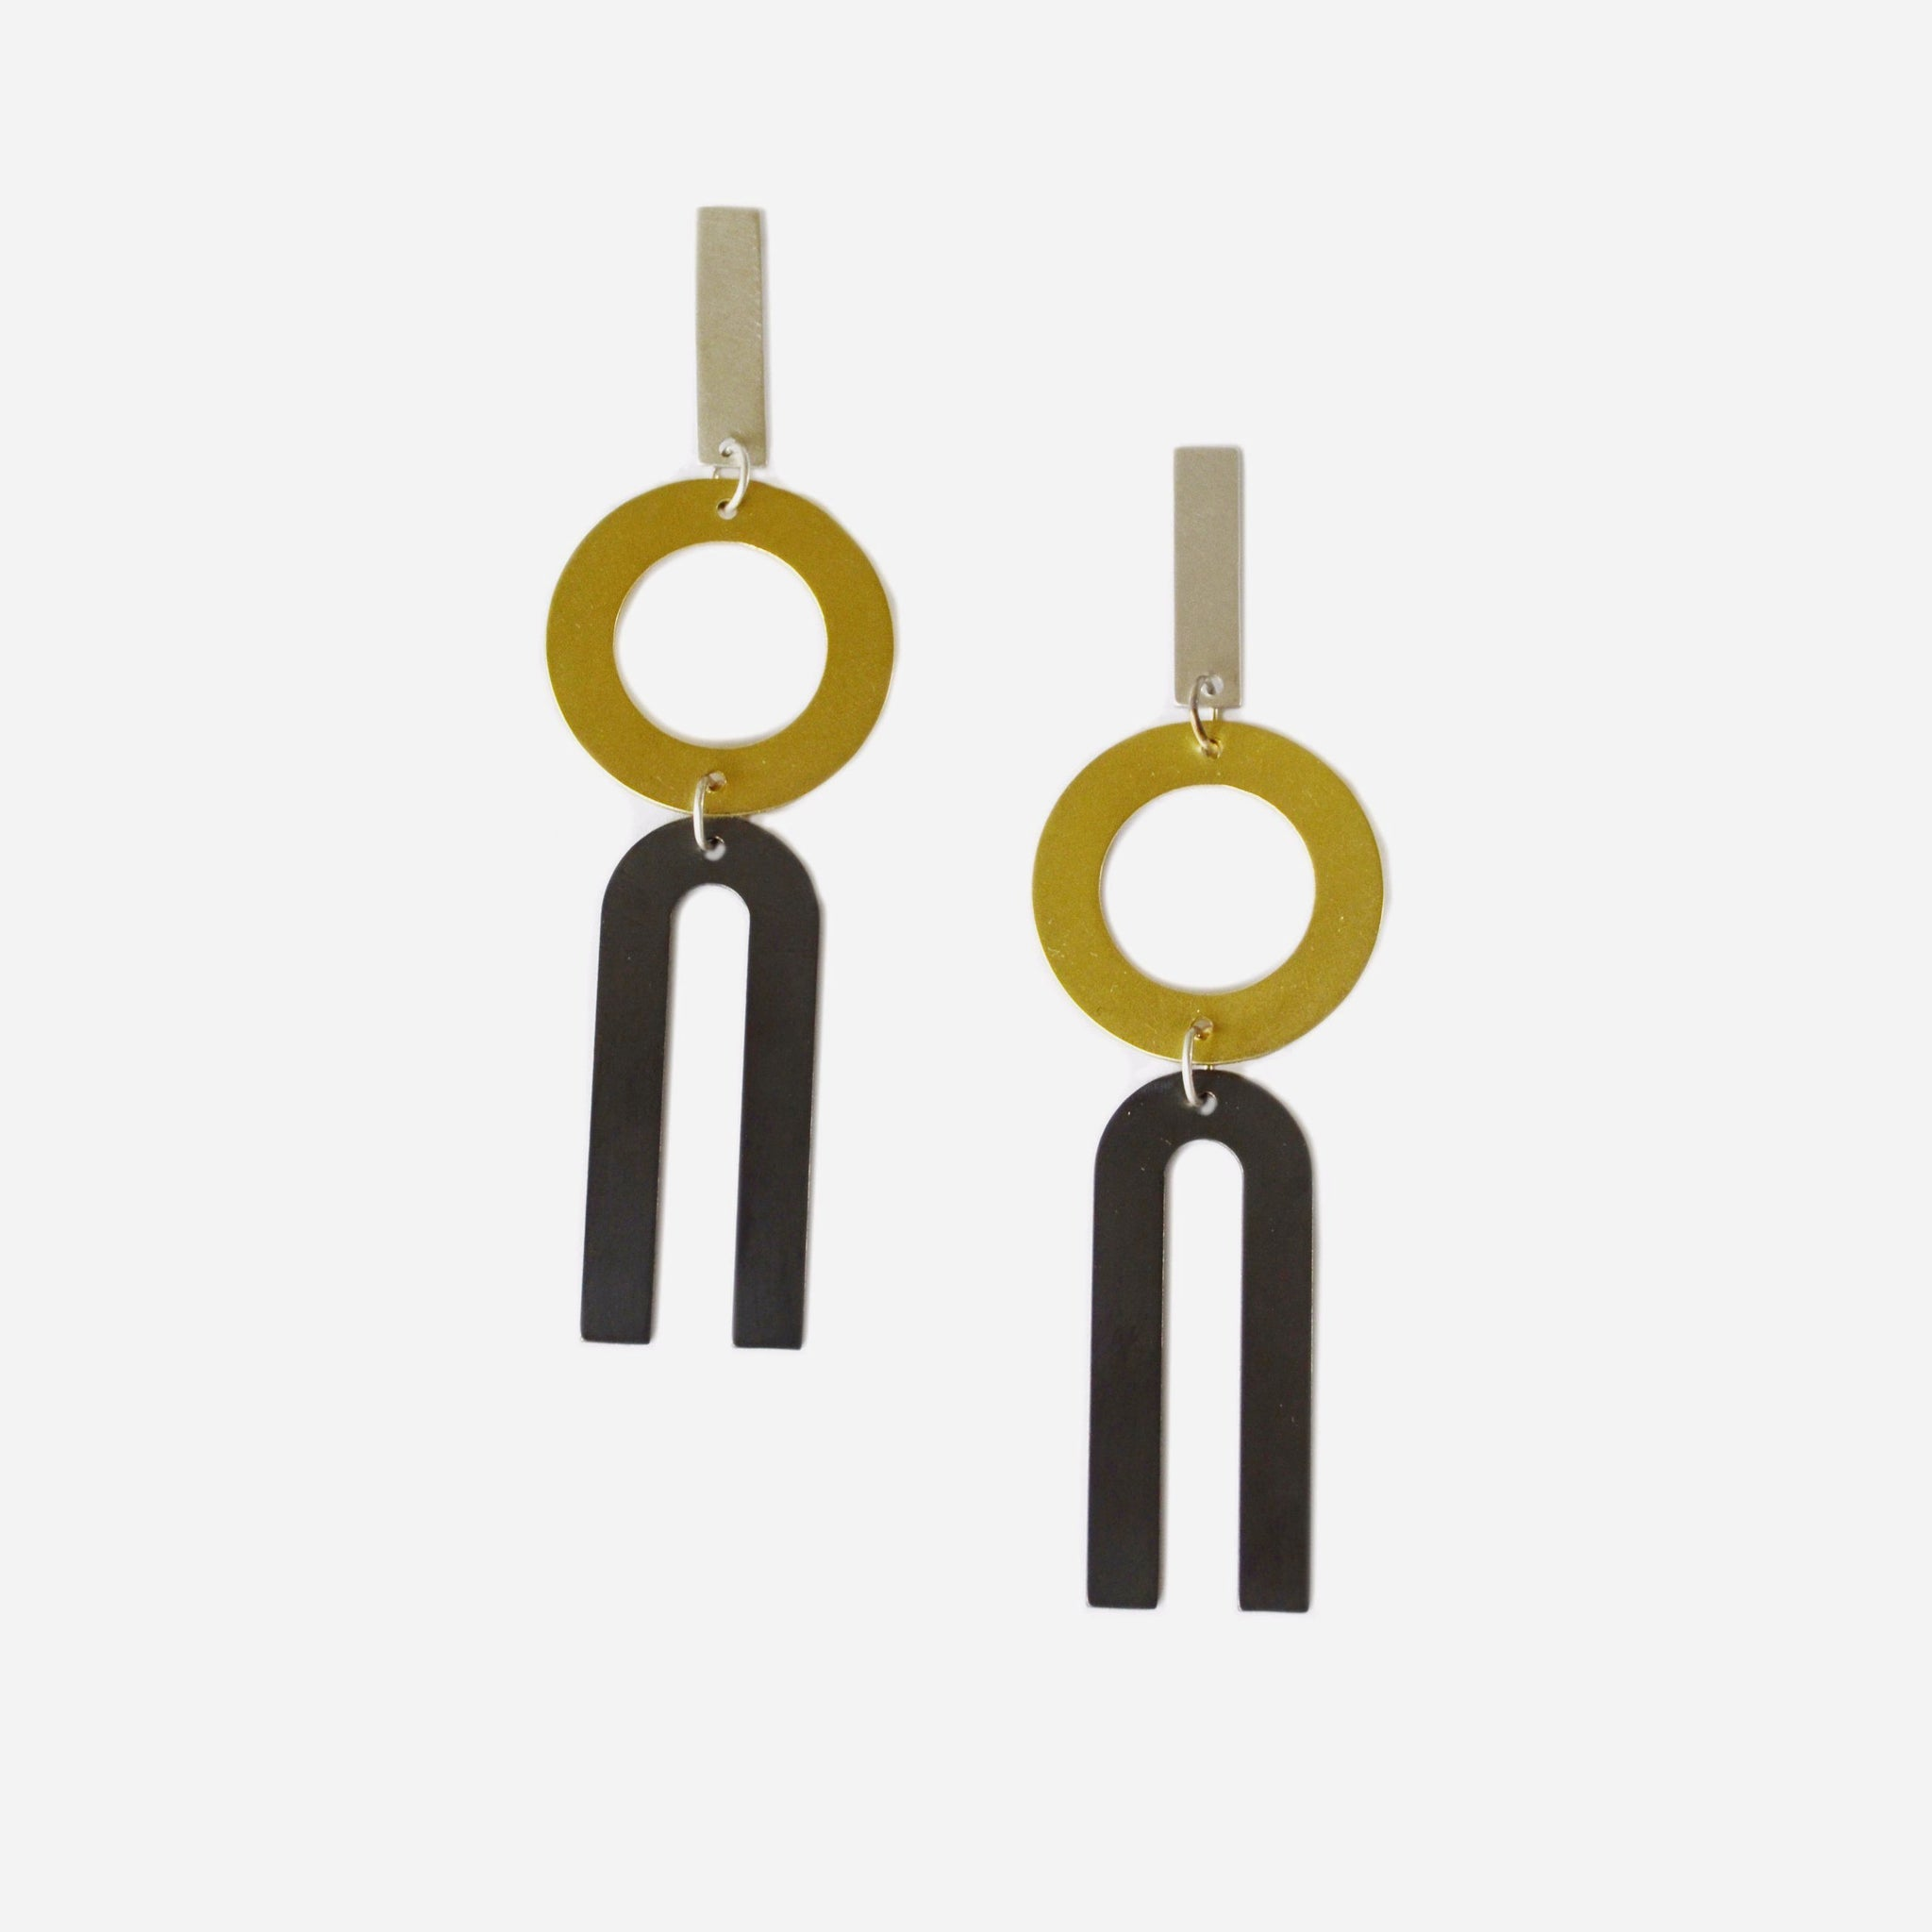 Divided Line Earrings